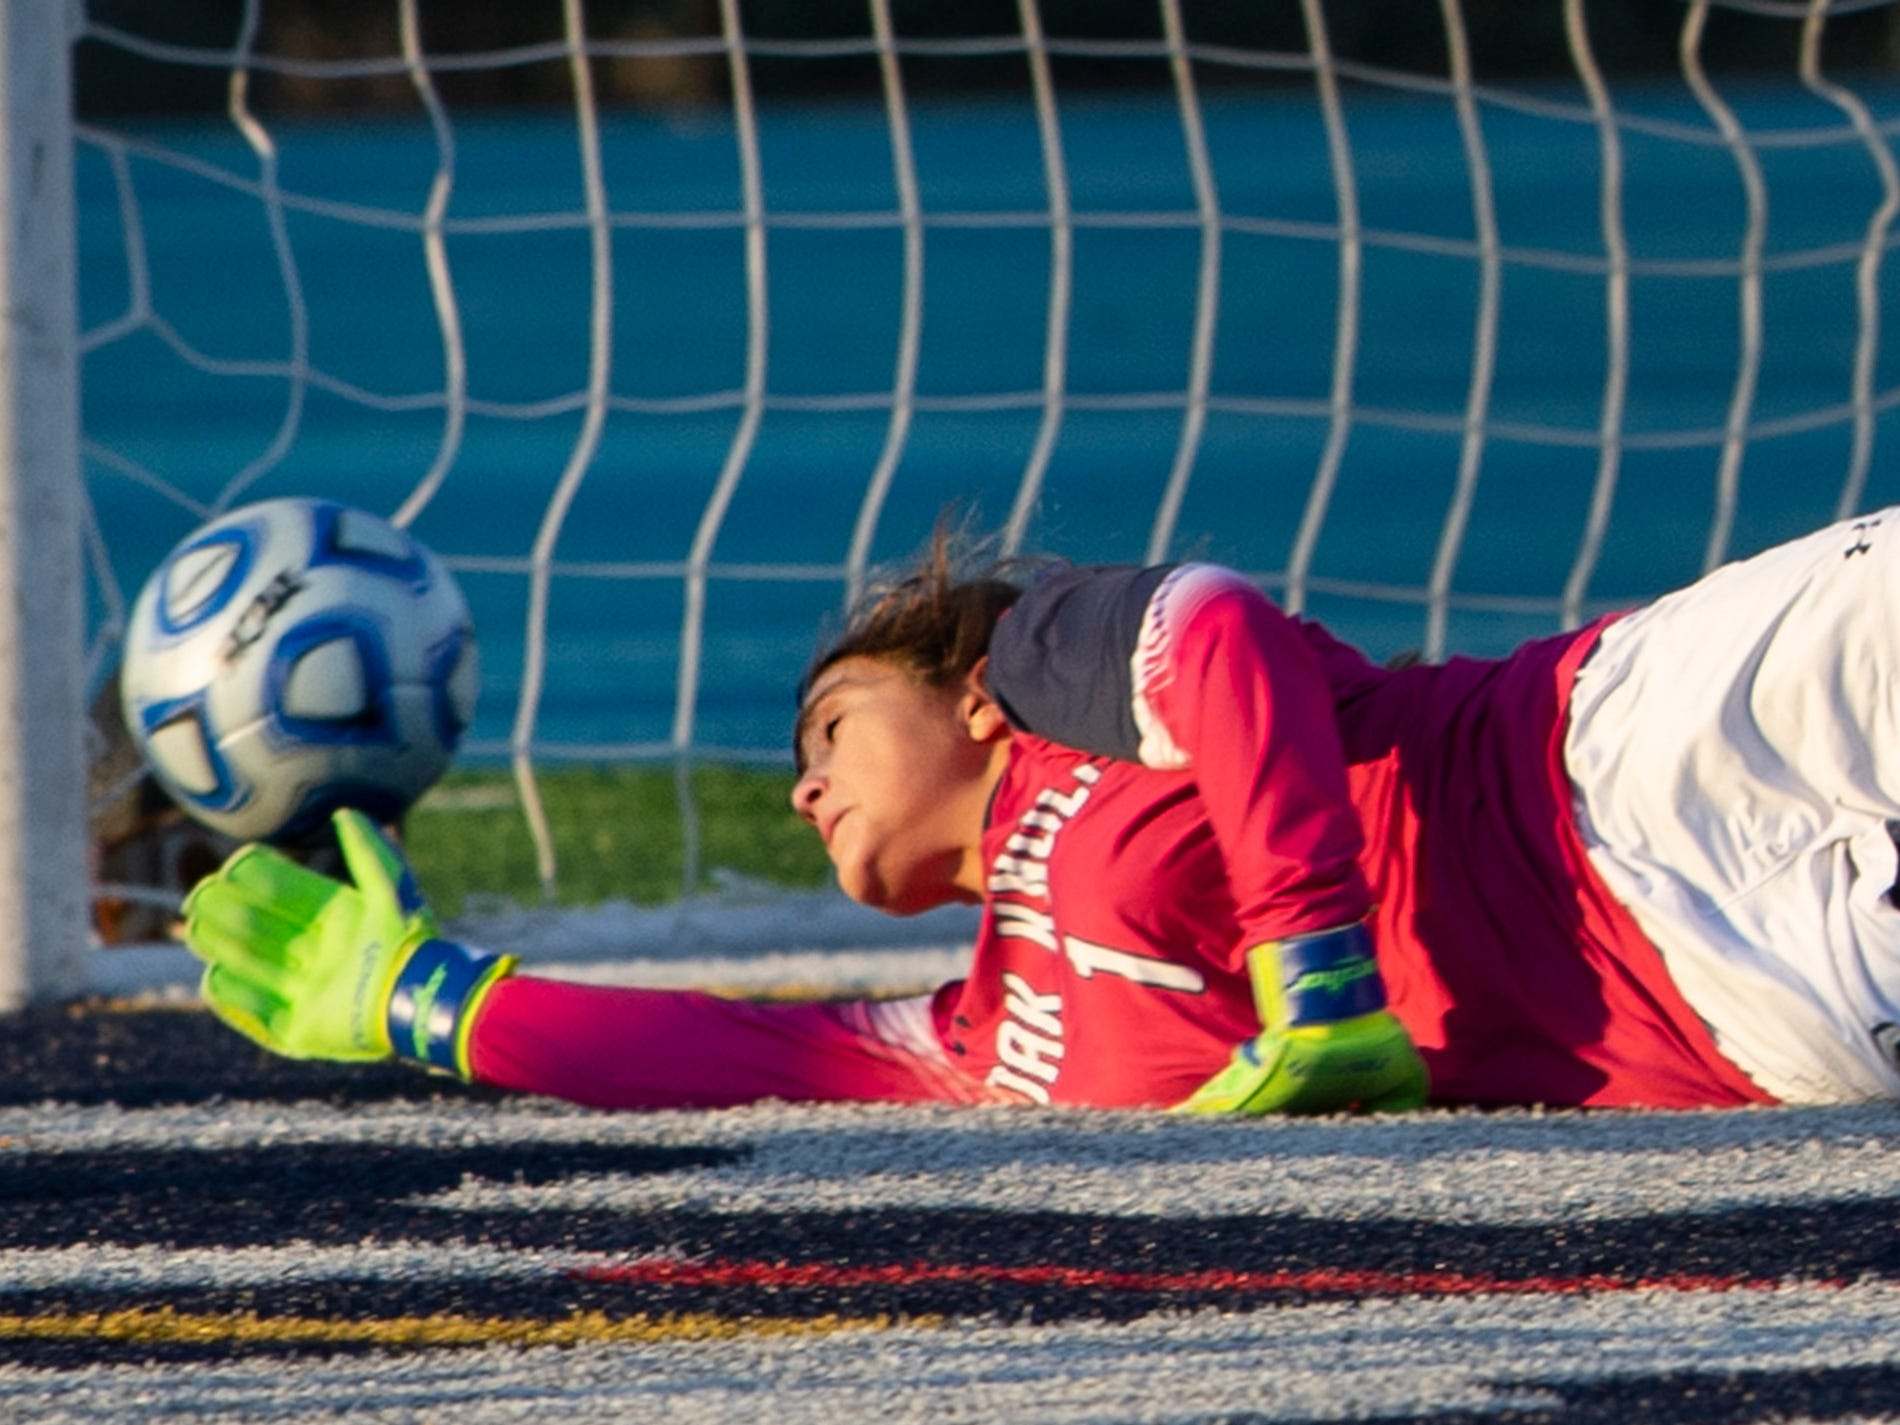 Oak Knoll goalie Bella Henry can't reach a shot by Sophia Cavaliere, which gave Pingry a commanding 3-0 lead in the Non-Public A final on Sunday, Nov. 11, 2018 at Kean University.